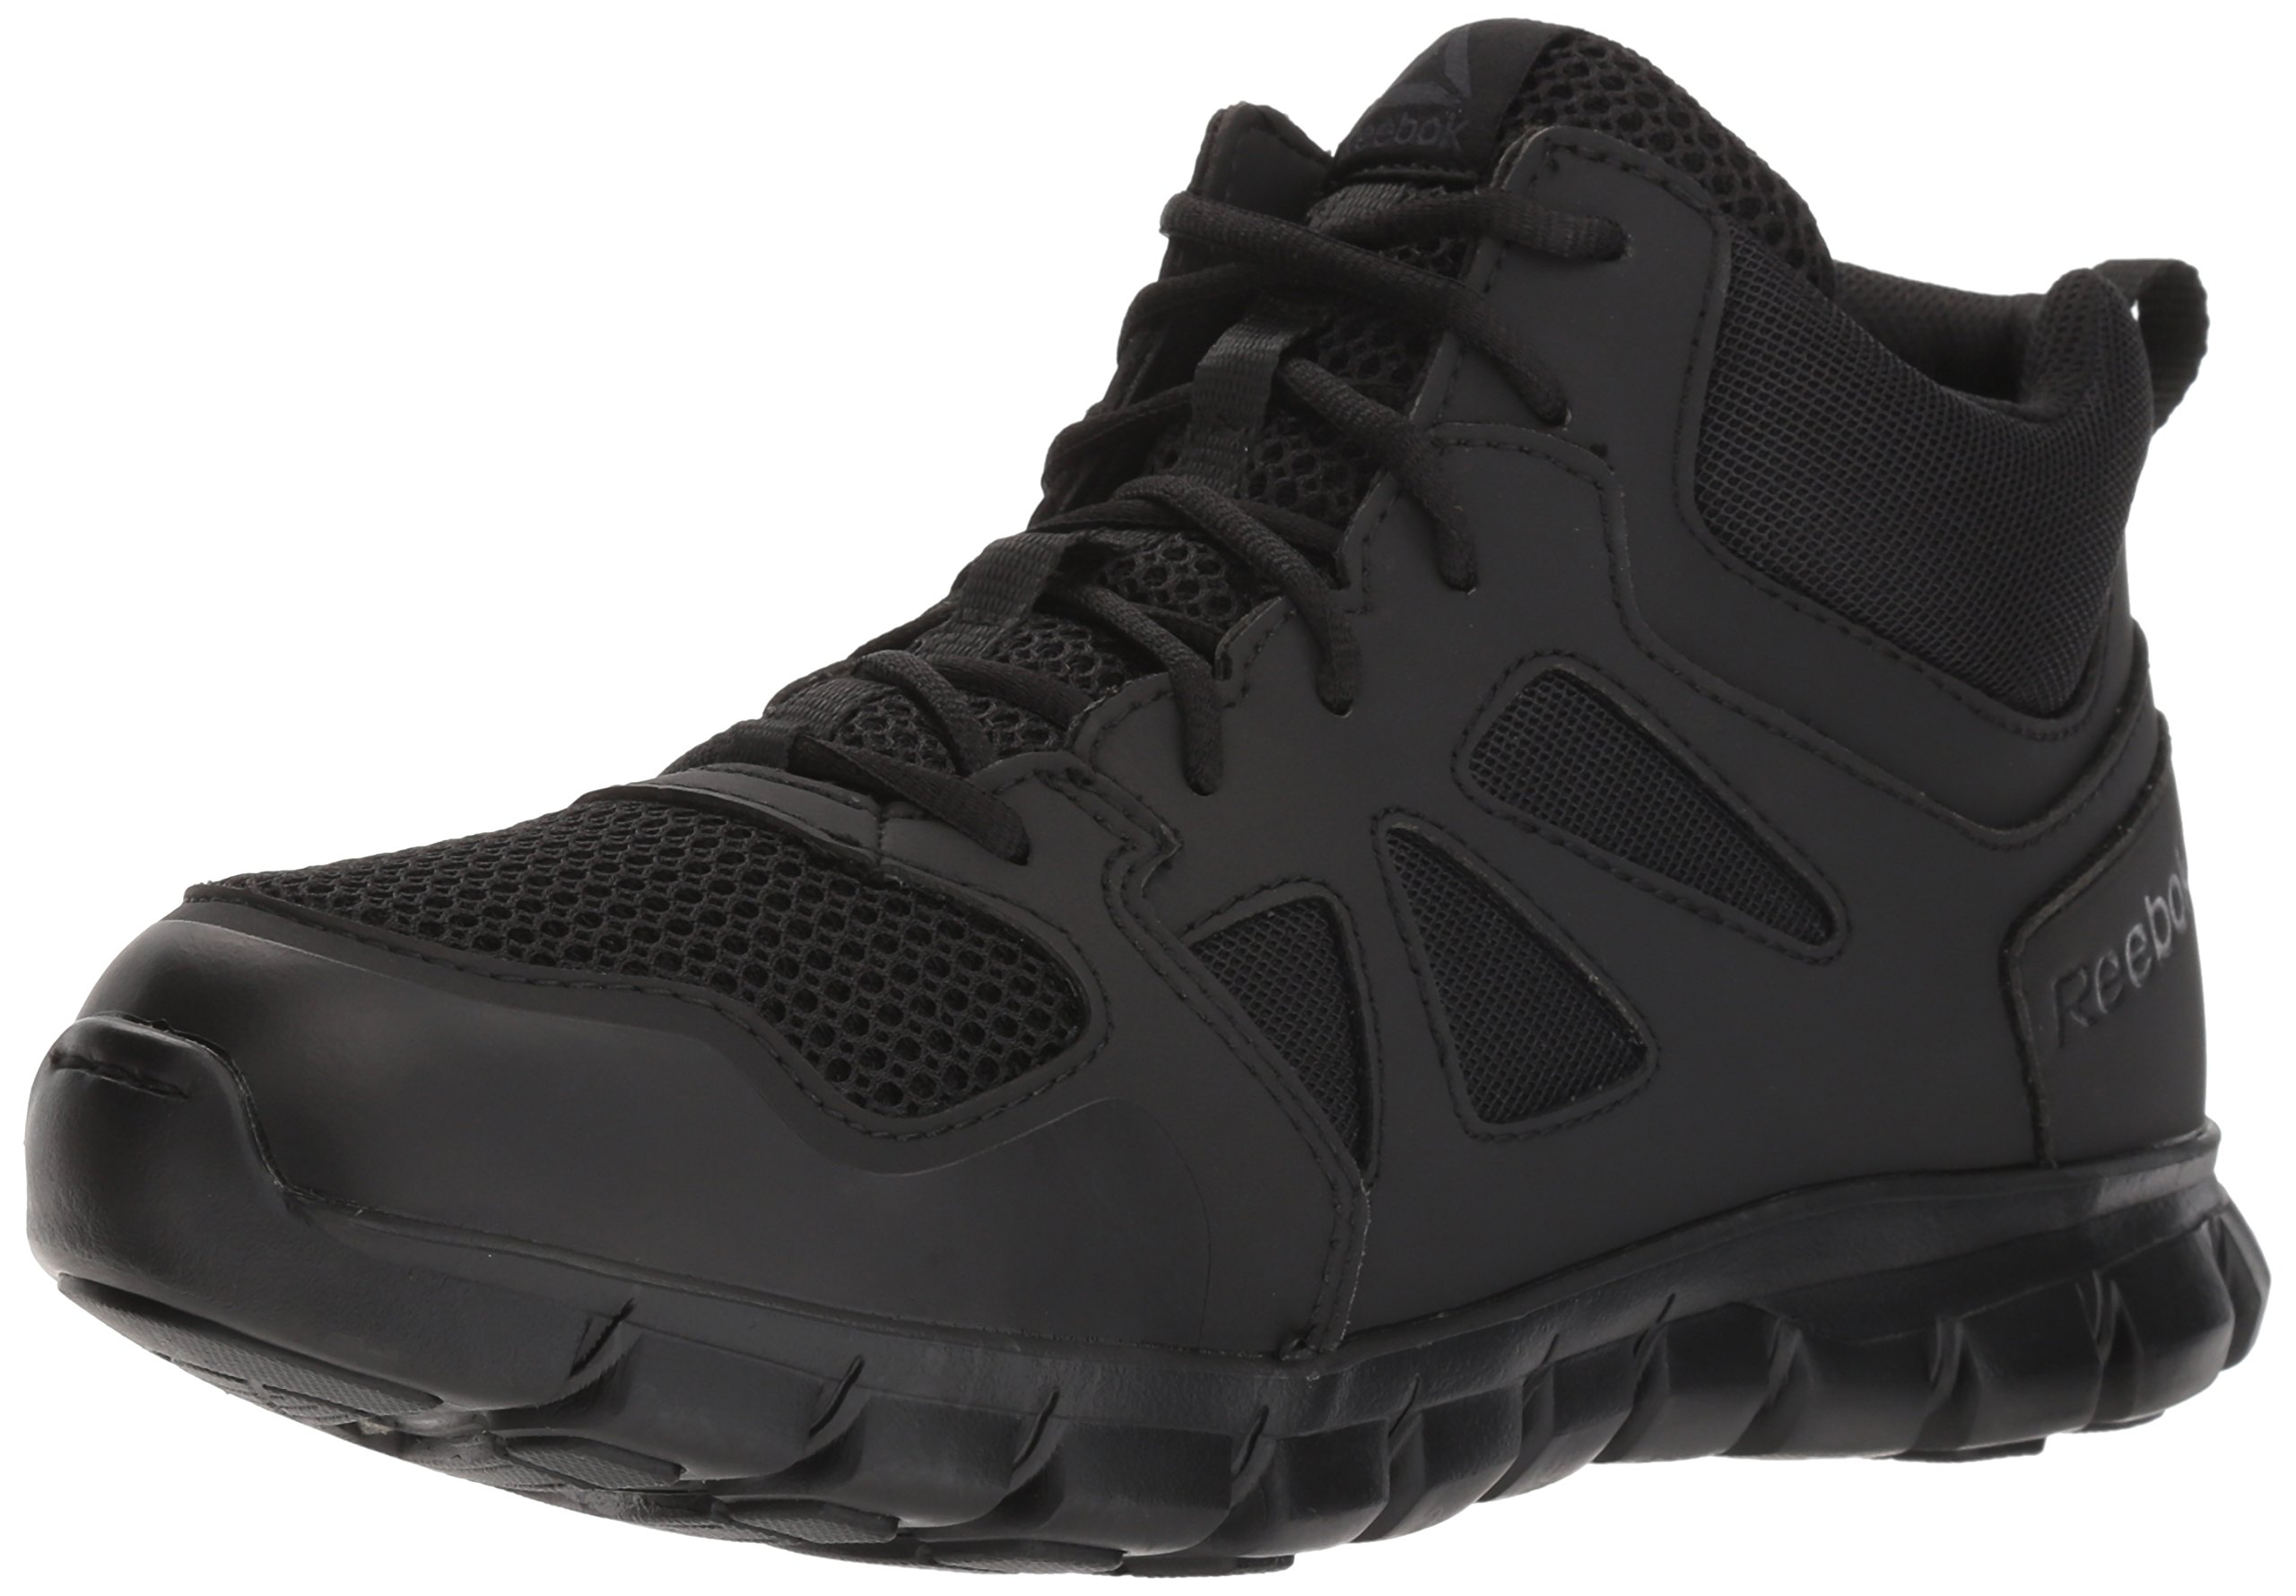 Reebok Men's Sublite Cushion Tactical RB8405